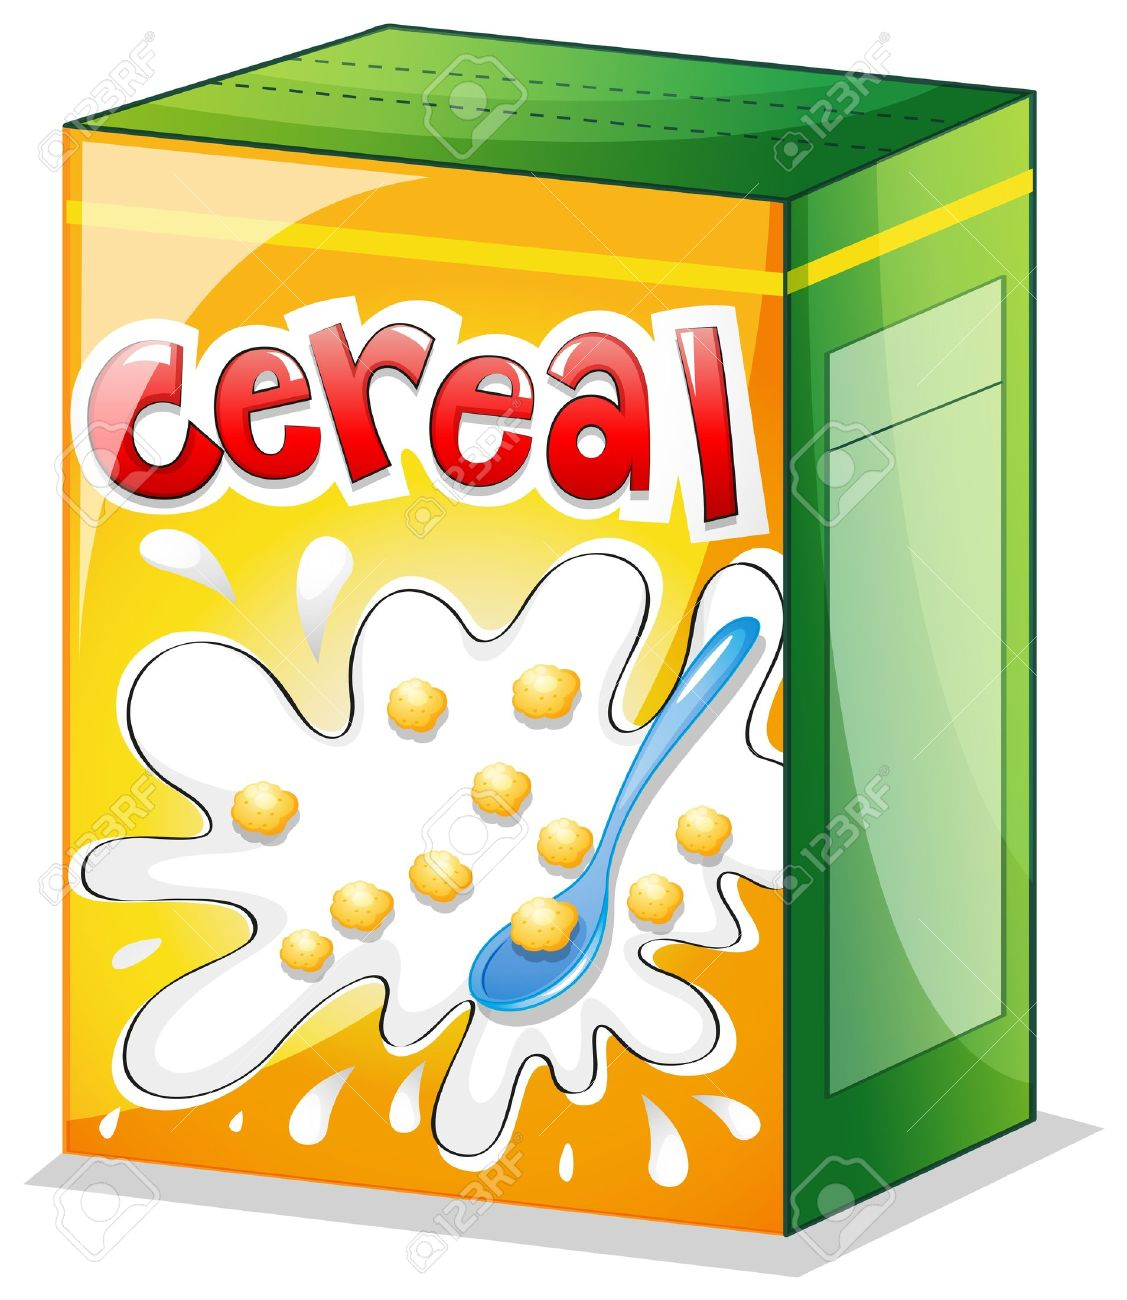 Breakfast clipart ceral 456 Healthy background Breakfast collection